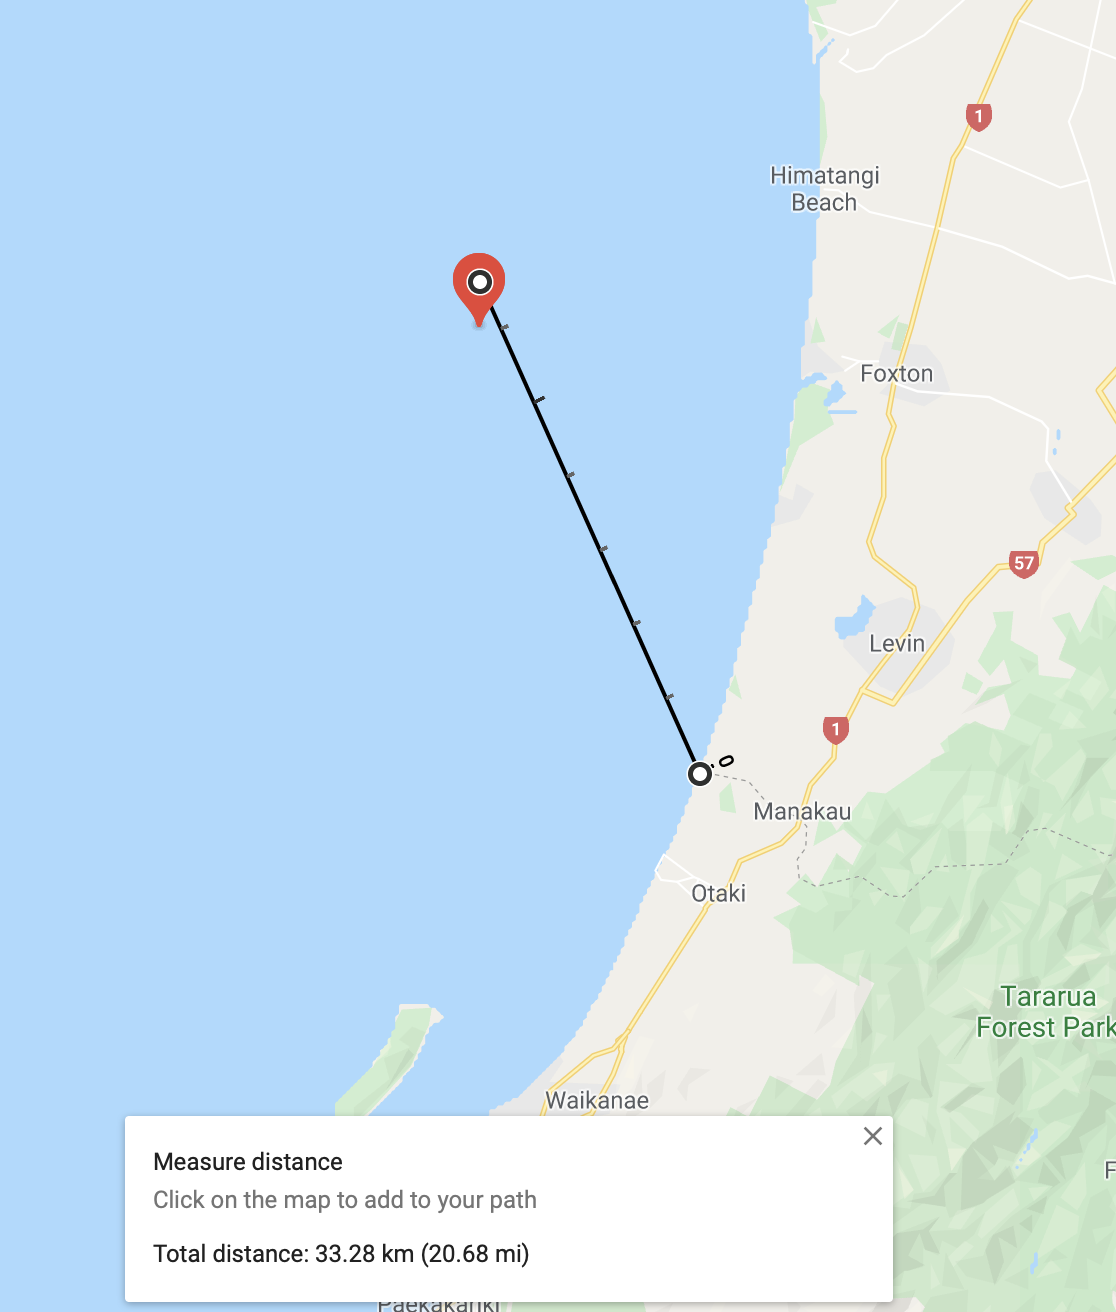 Location of the quake, offshore, about 33 Km away.